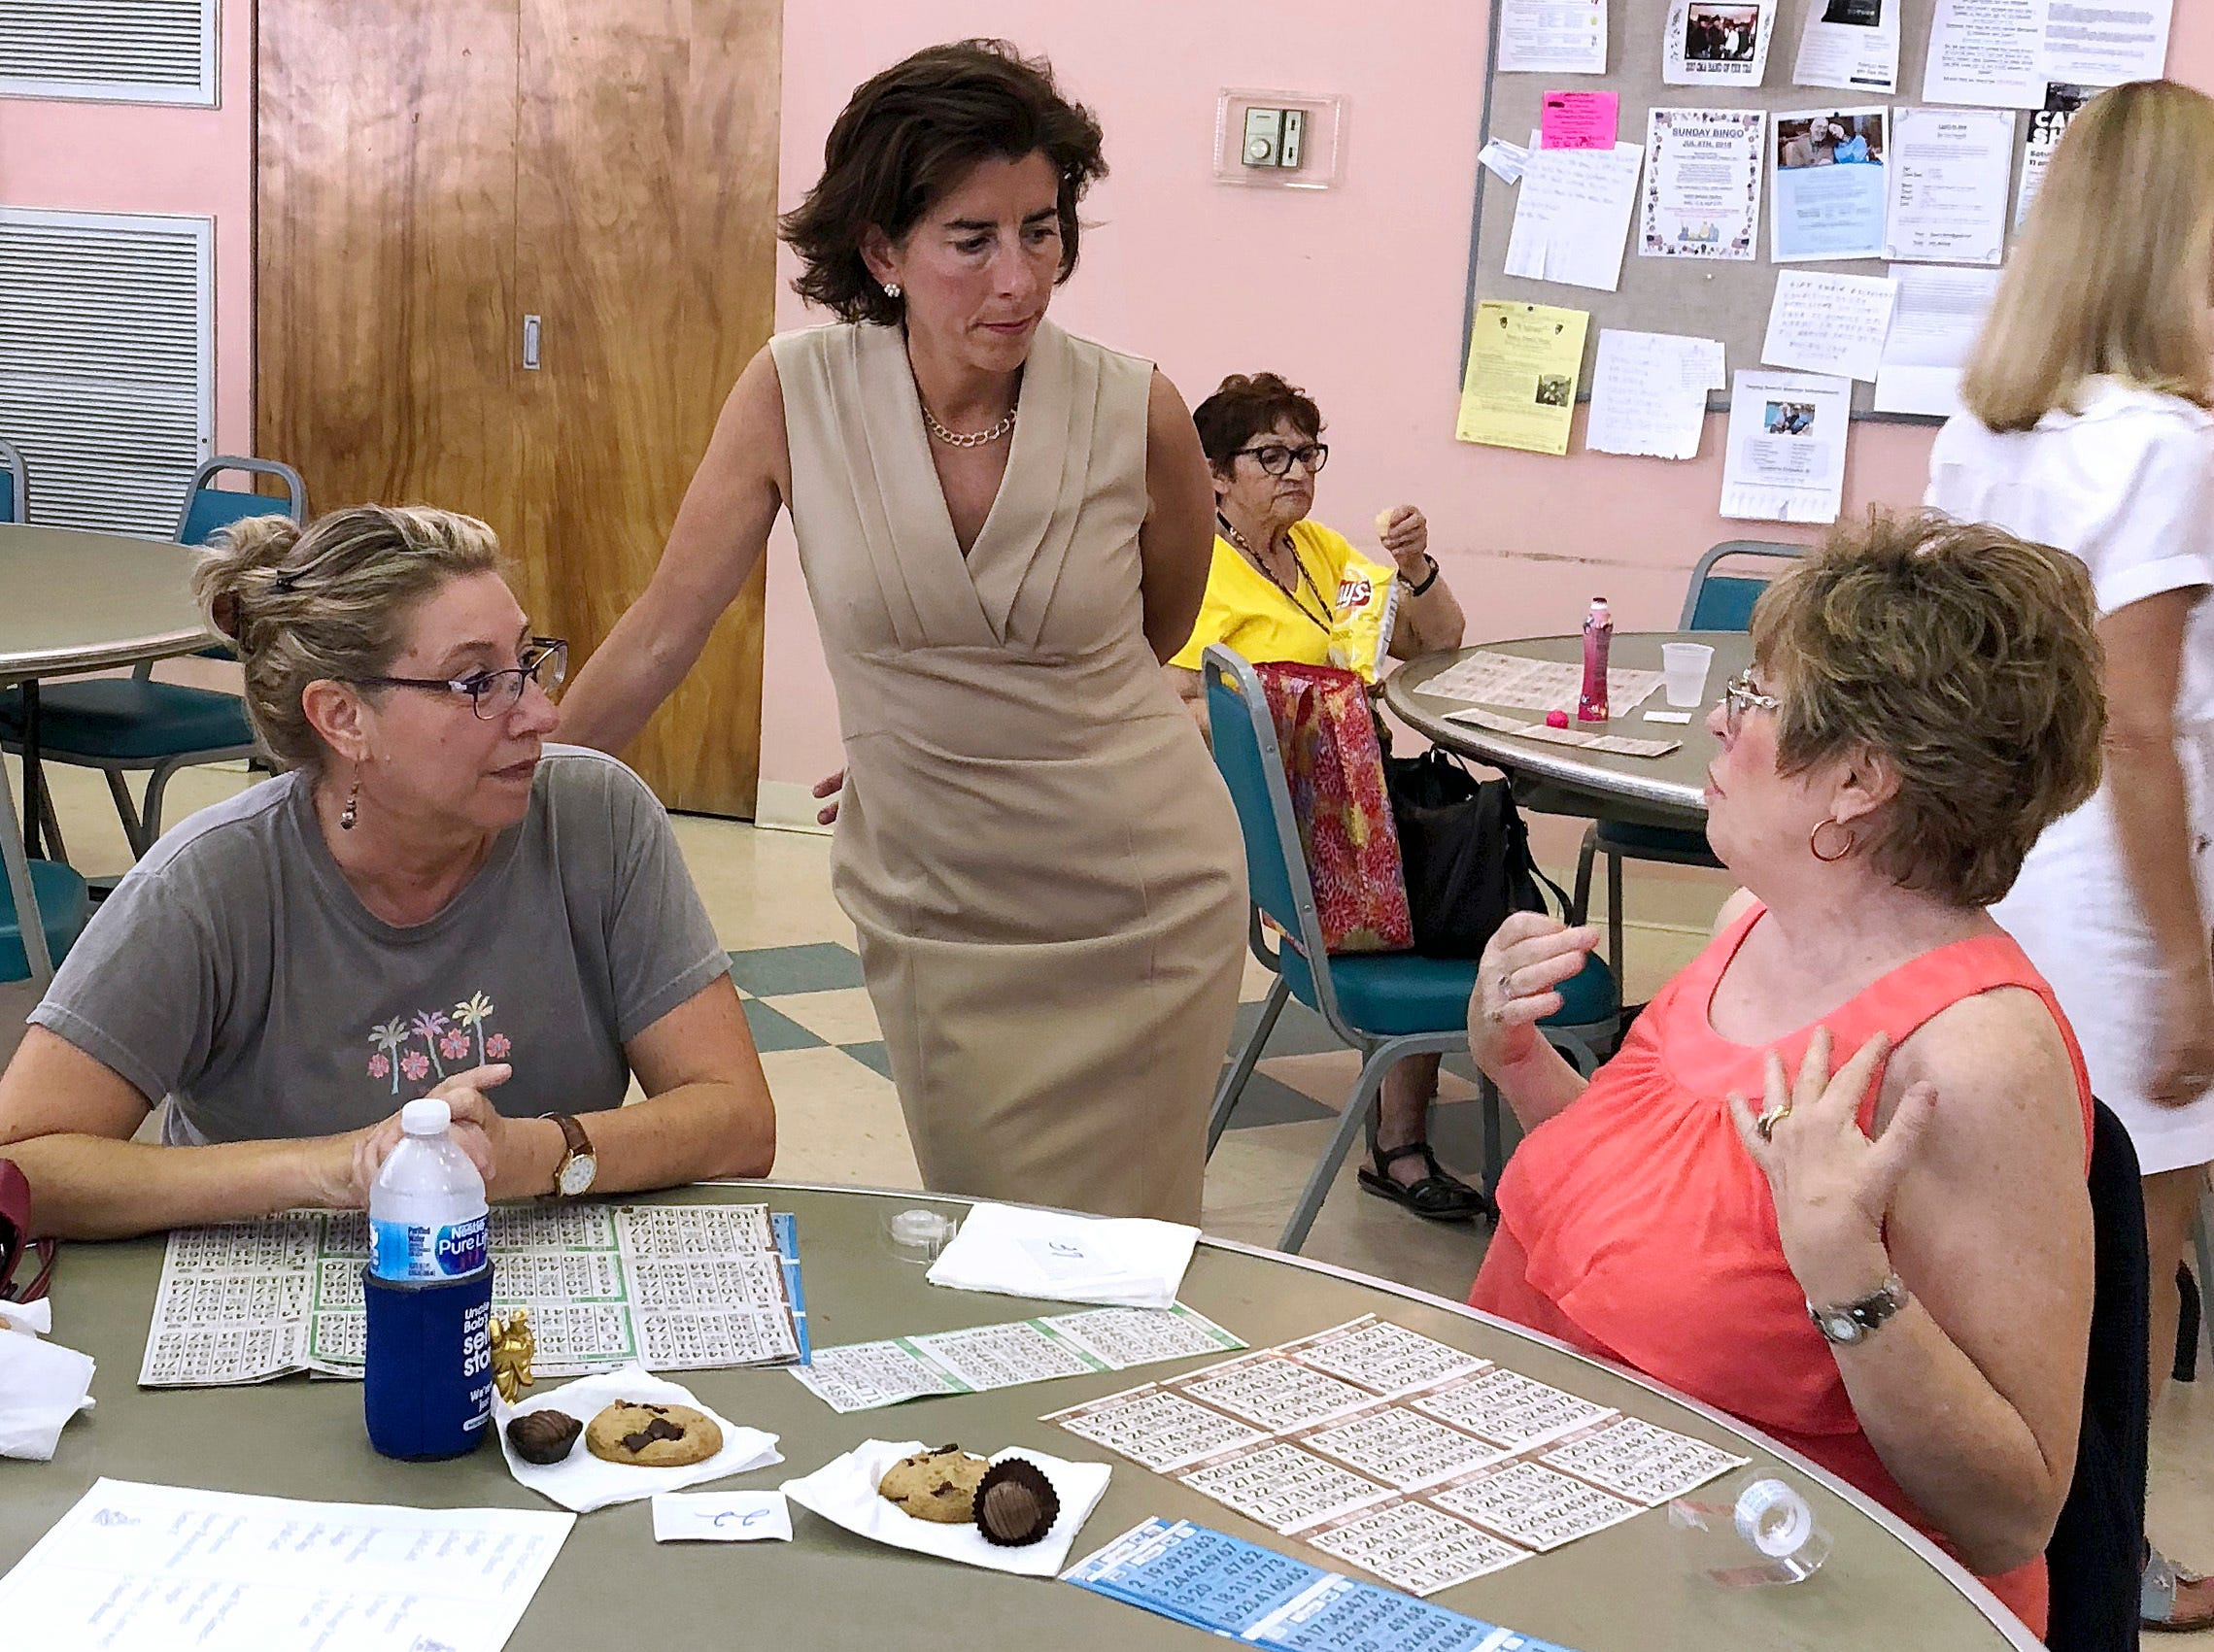 FILE- In this Aug. 2, 2018, file photo, Rhode Island Gov. Gina Raimondo, center, speaks with Lisa McGovern, left, and Betty Toye at the Pilgrim Senior Center in Warwick, R.I. Raimondo and U.S. Rep. Gwen Graham of Florida are among nine women running for governor who will face primary voters in coming weeks. No more than nine women have ever led states at the same time.